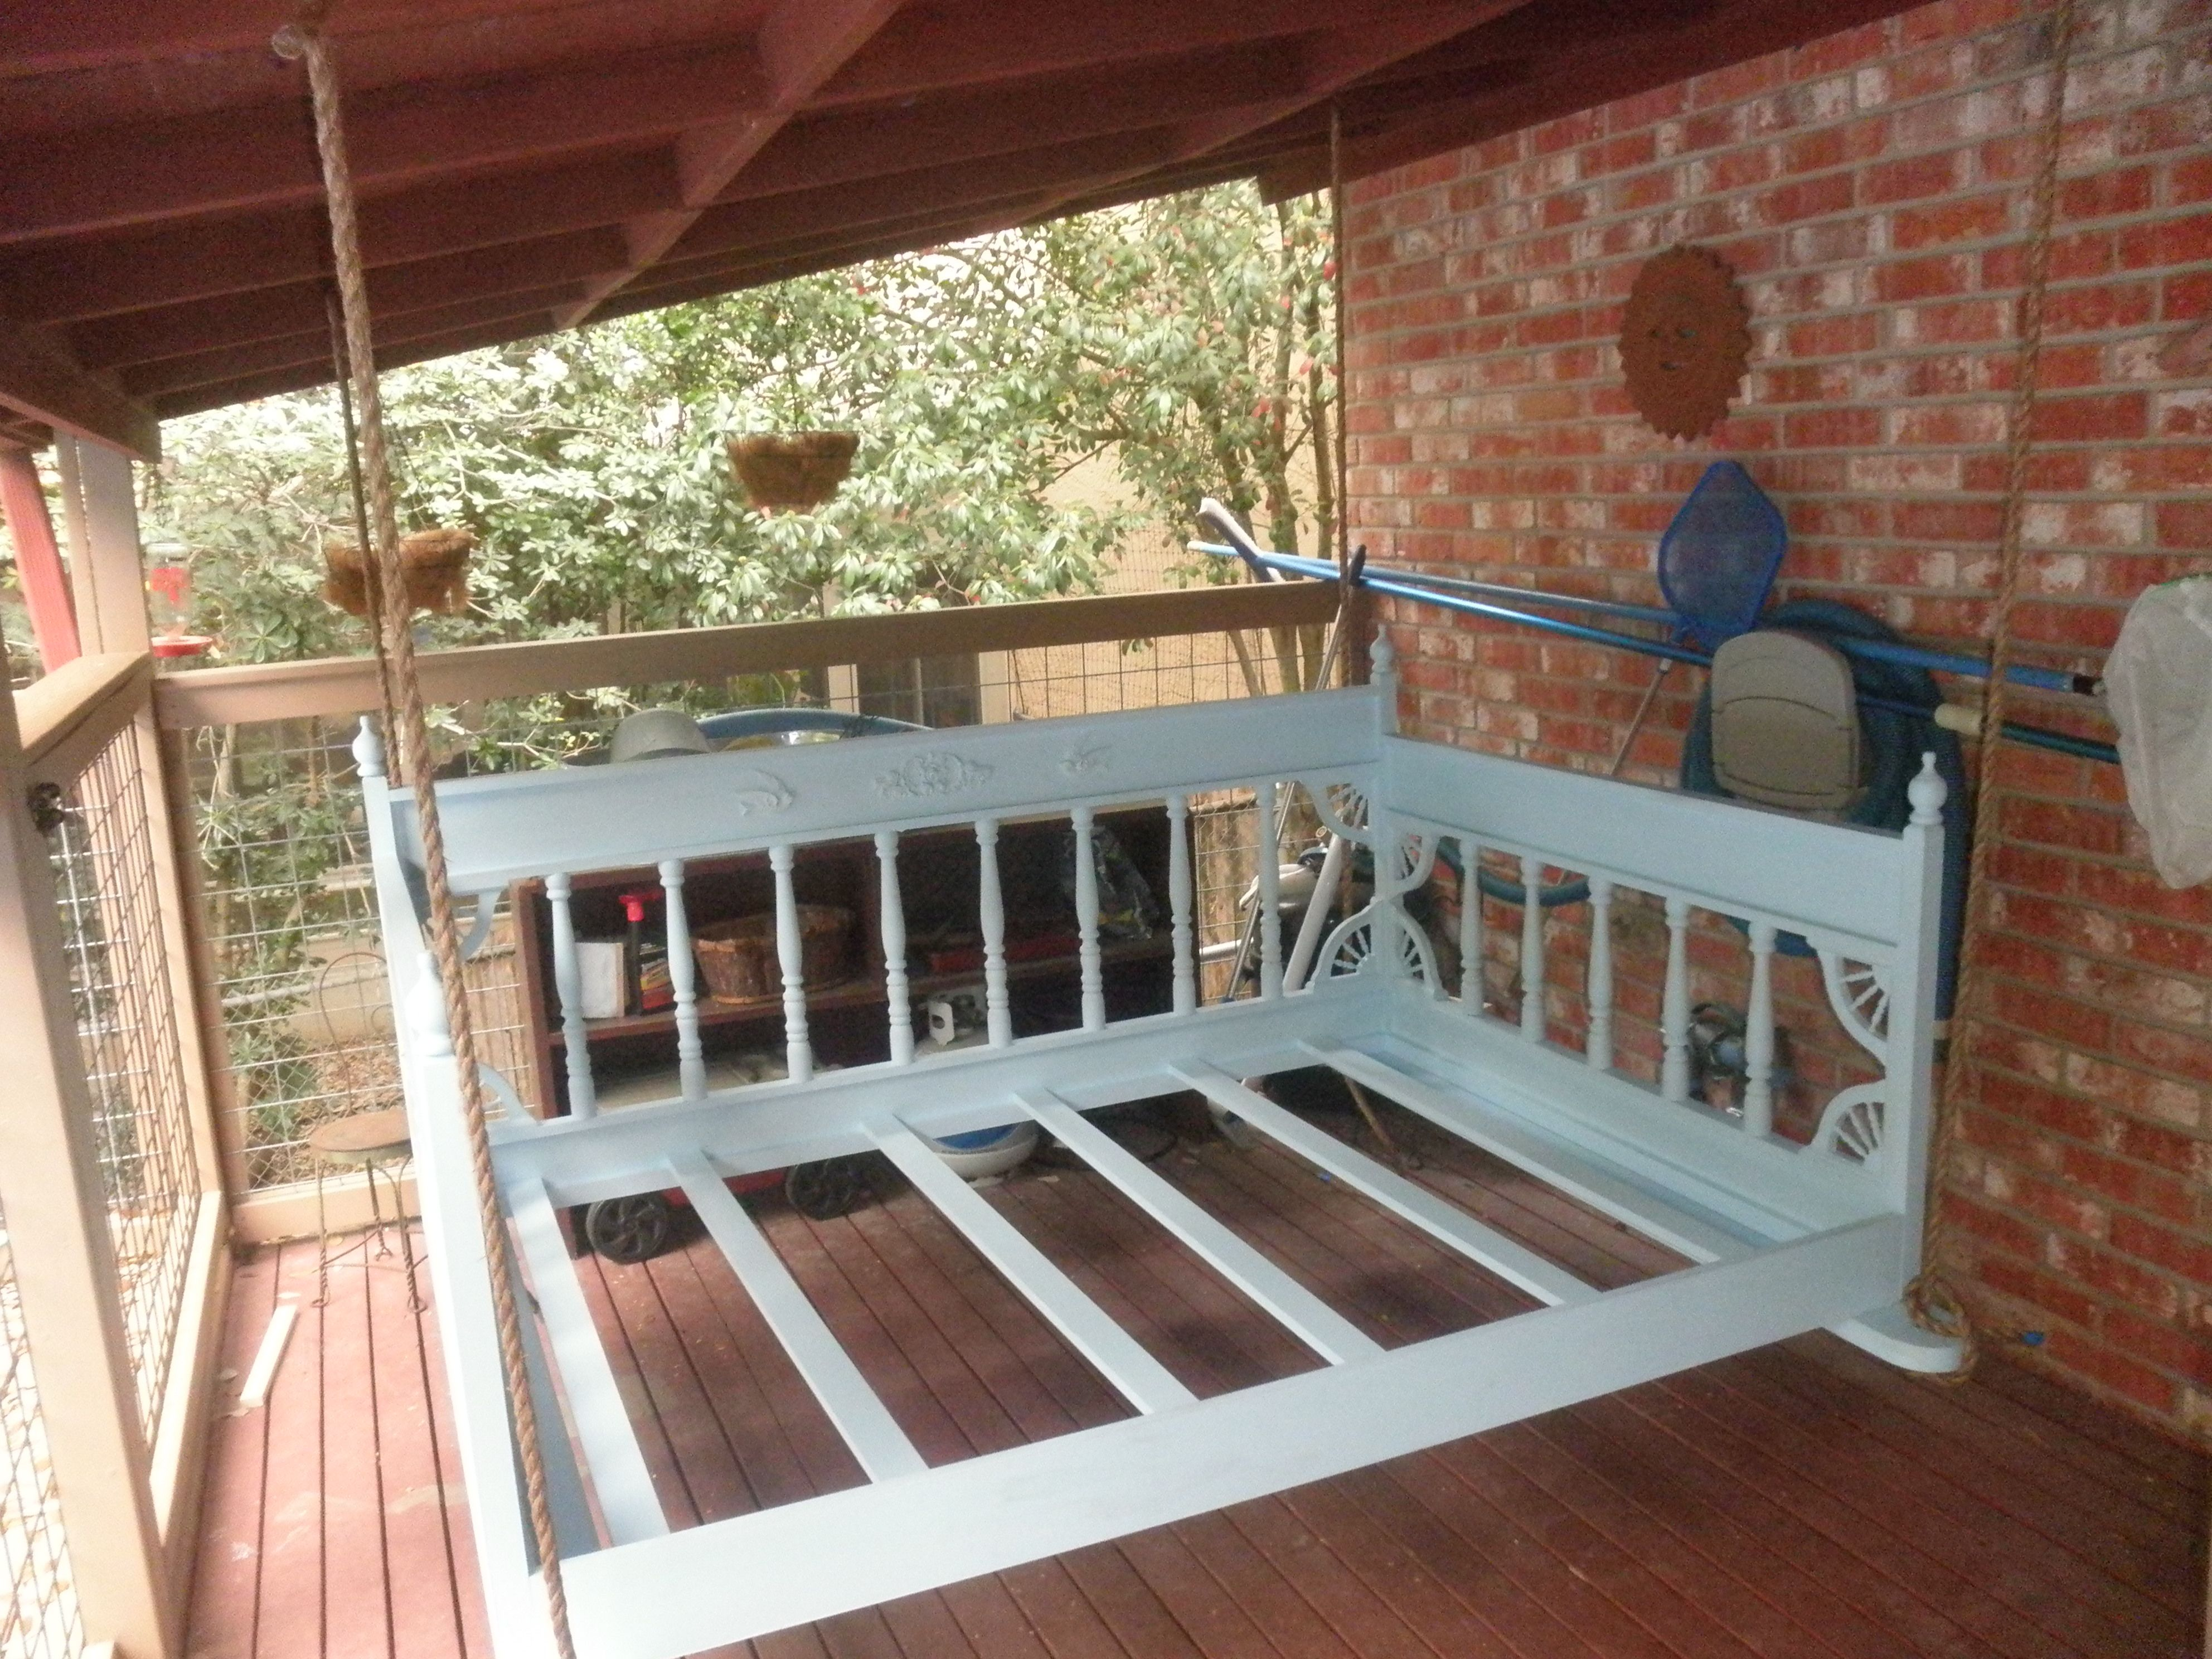 swing bed plans | swing bed | woodworking plans porch swing, porch